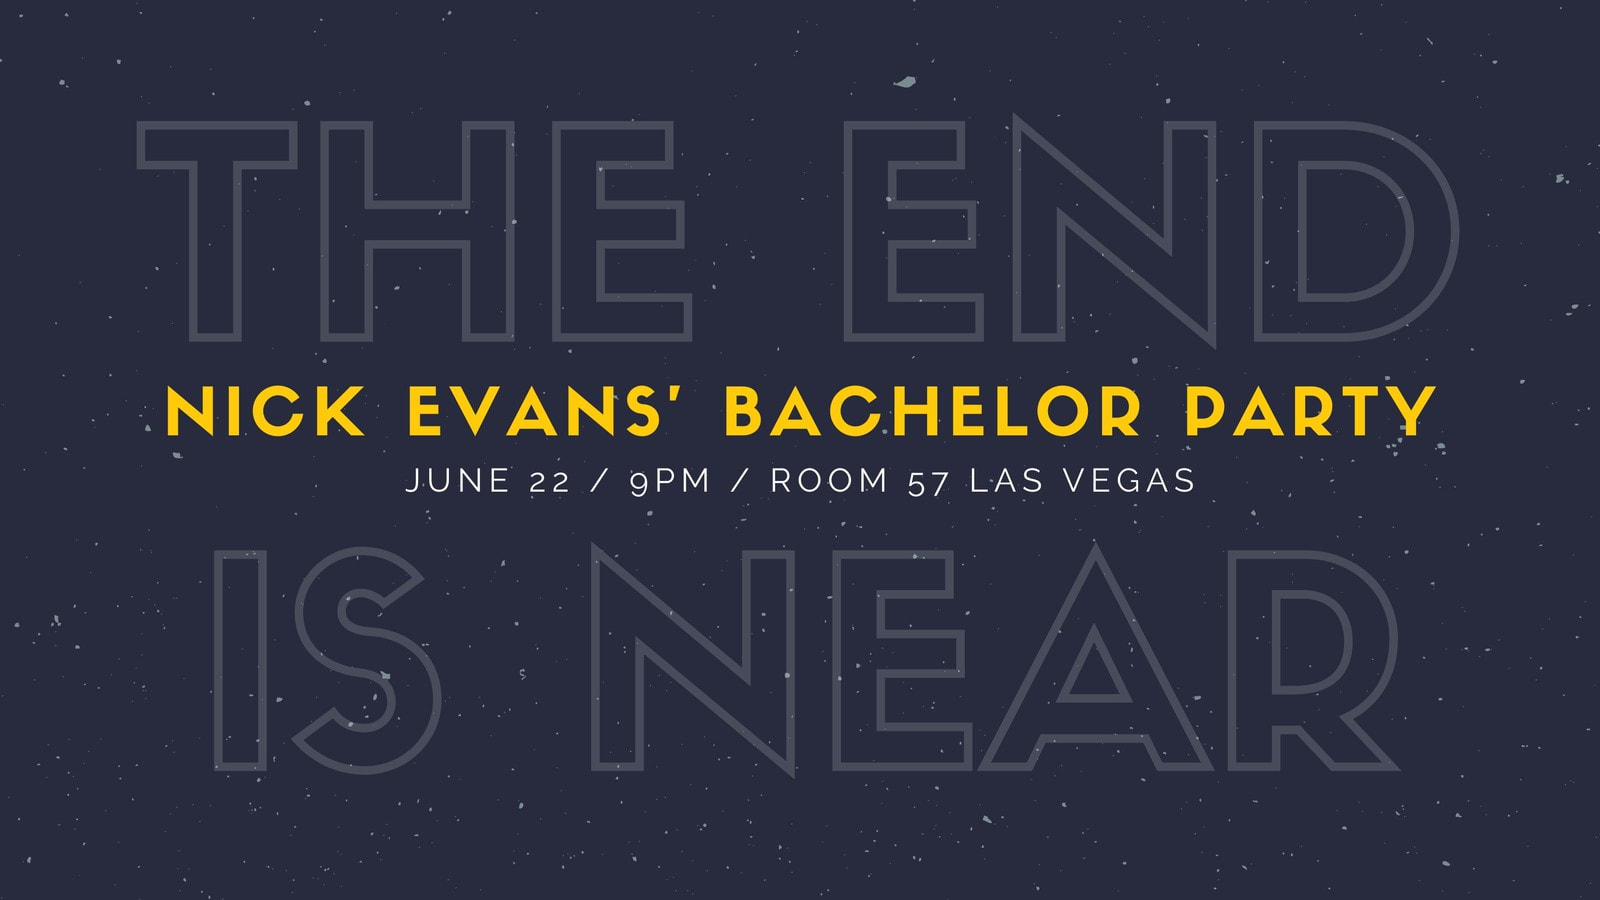 Dark Textured Bachelor Party Facebook Event Cover